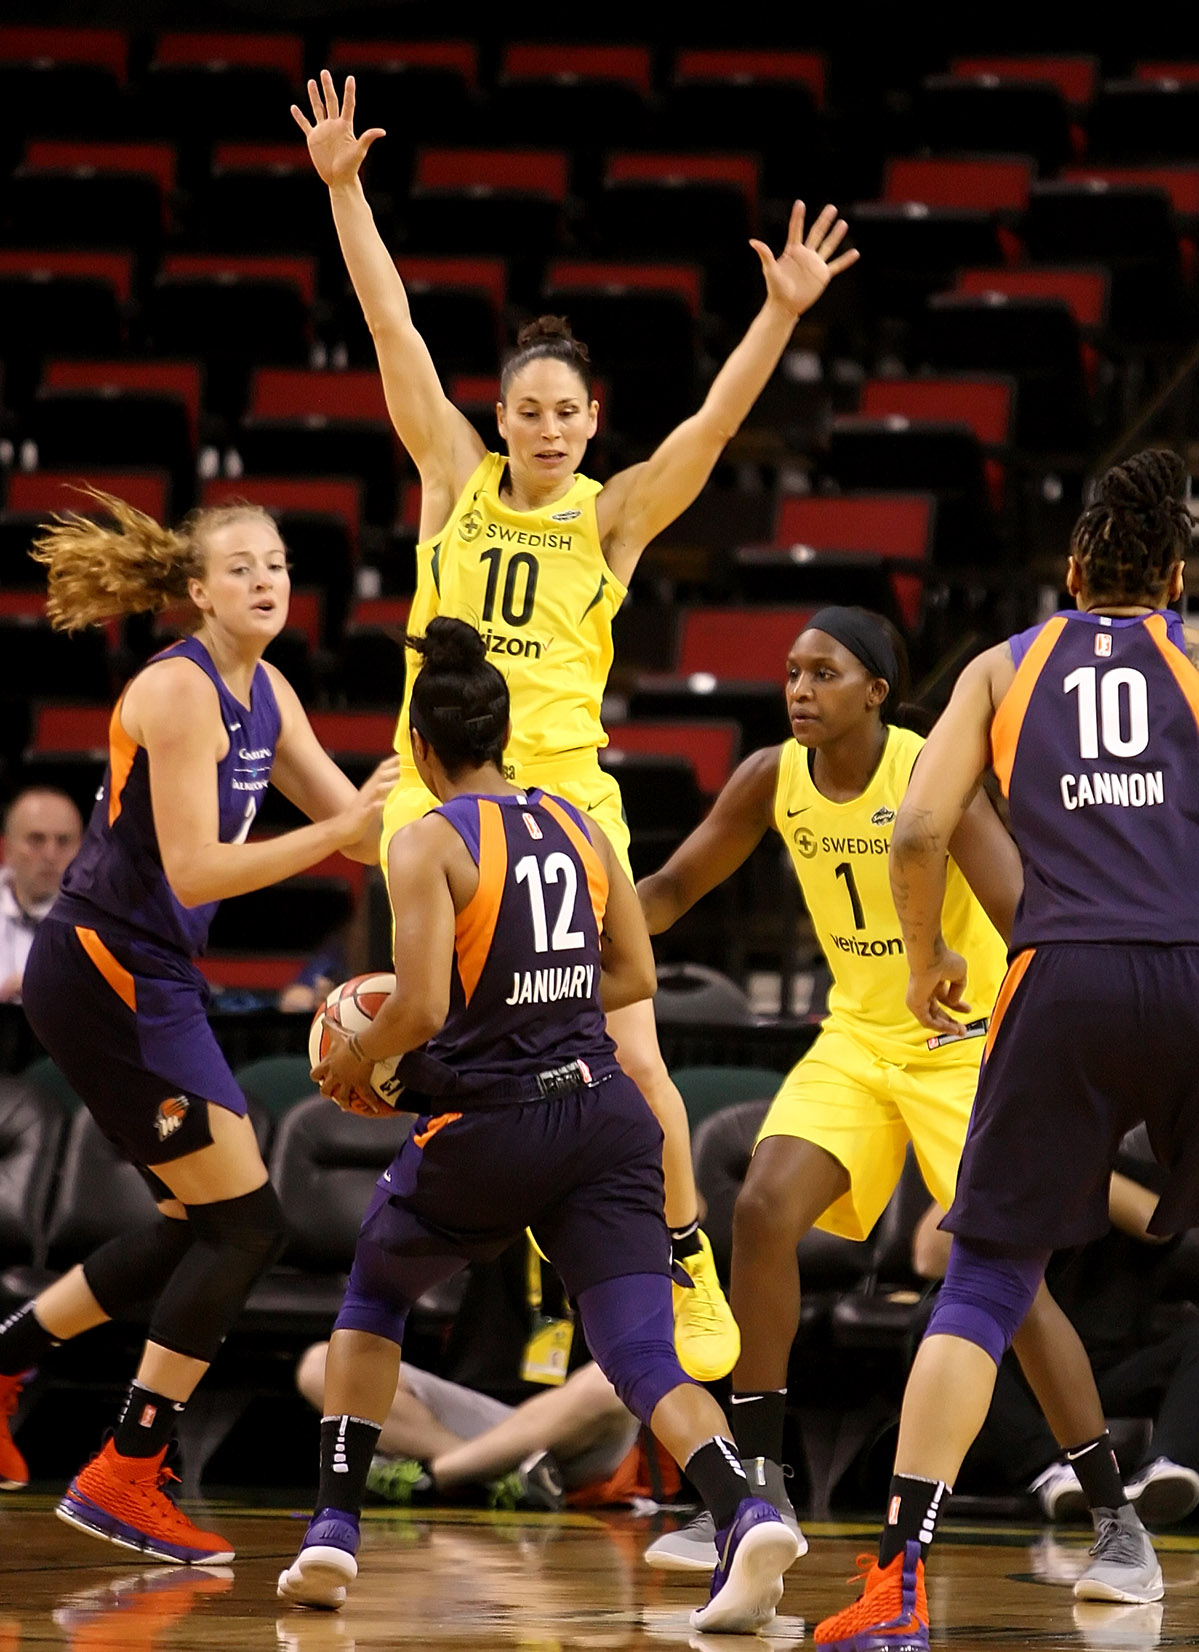 Sue Bird of the Storm goes airborne to disrupt a pass by the Mercury's Briann January.